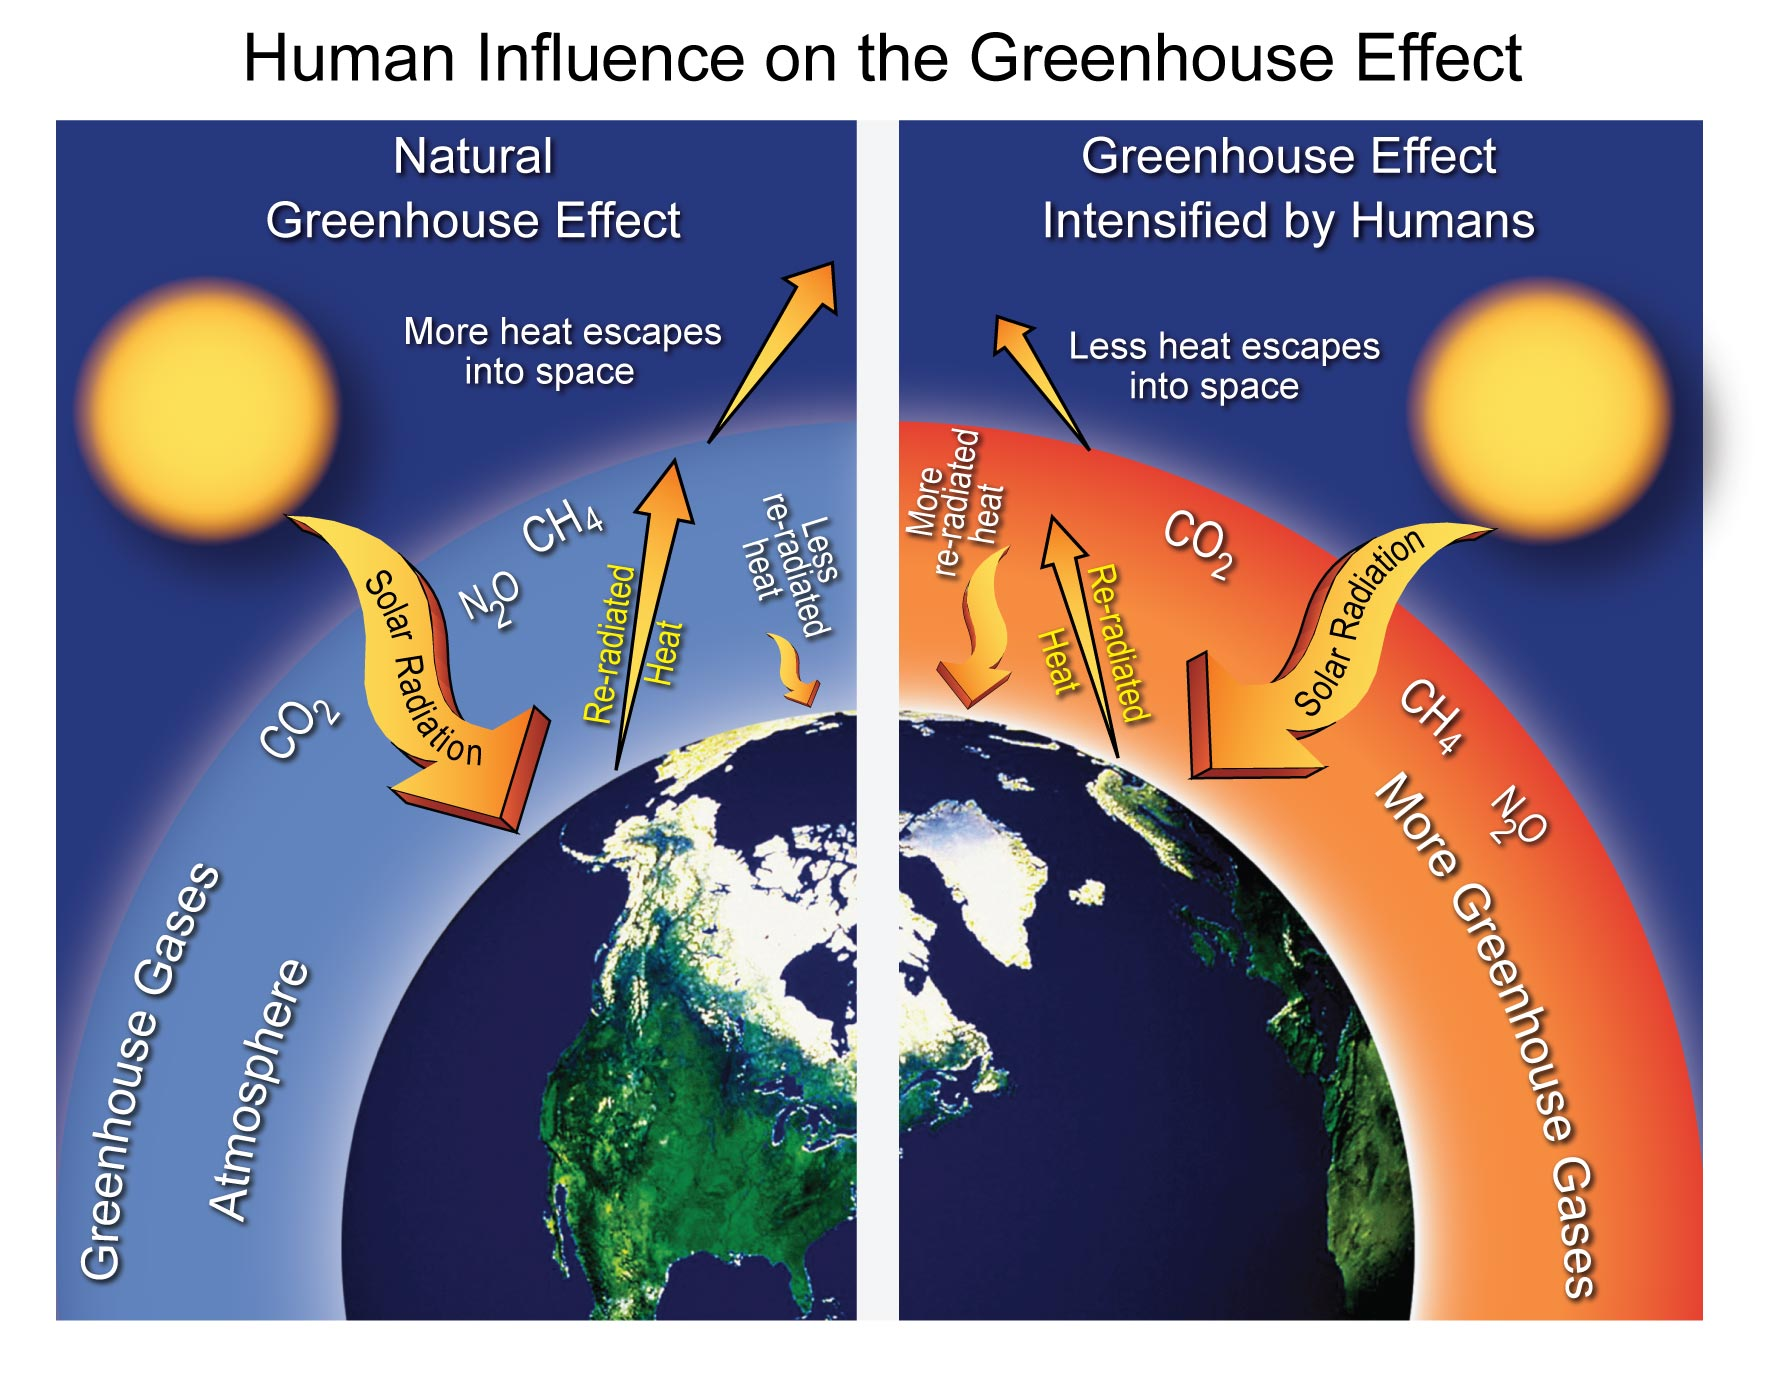 Human influence on the greenhouse effect national for Green housse effect